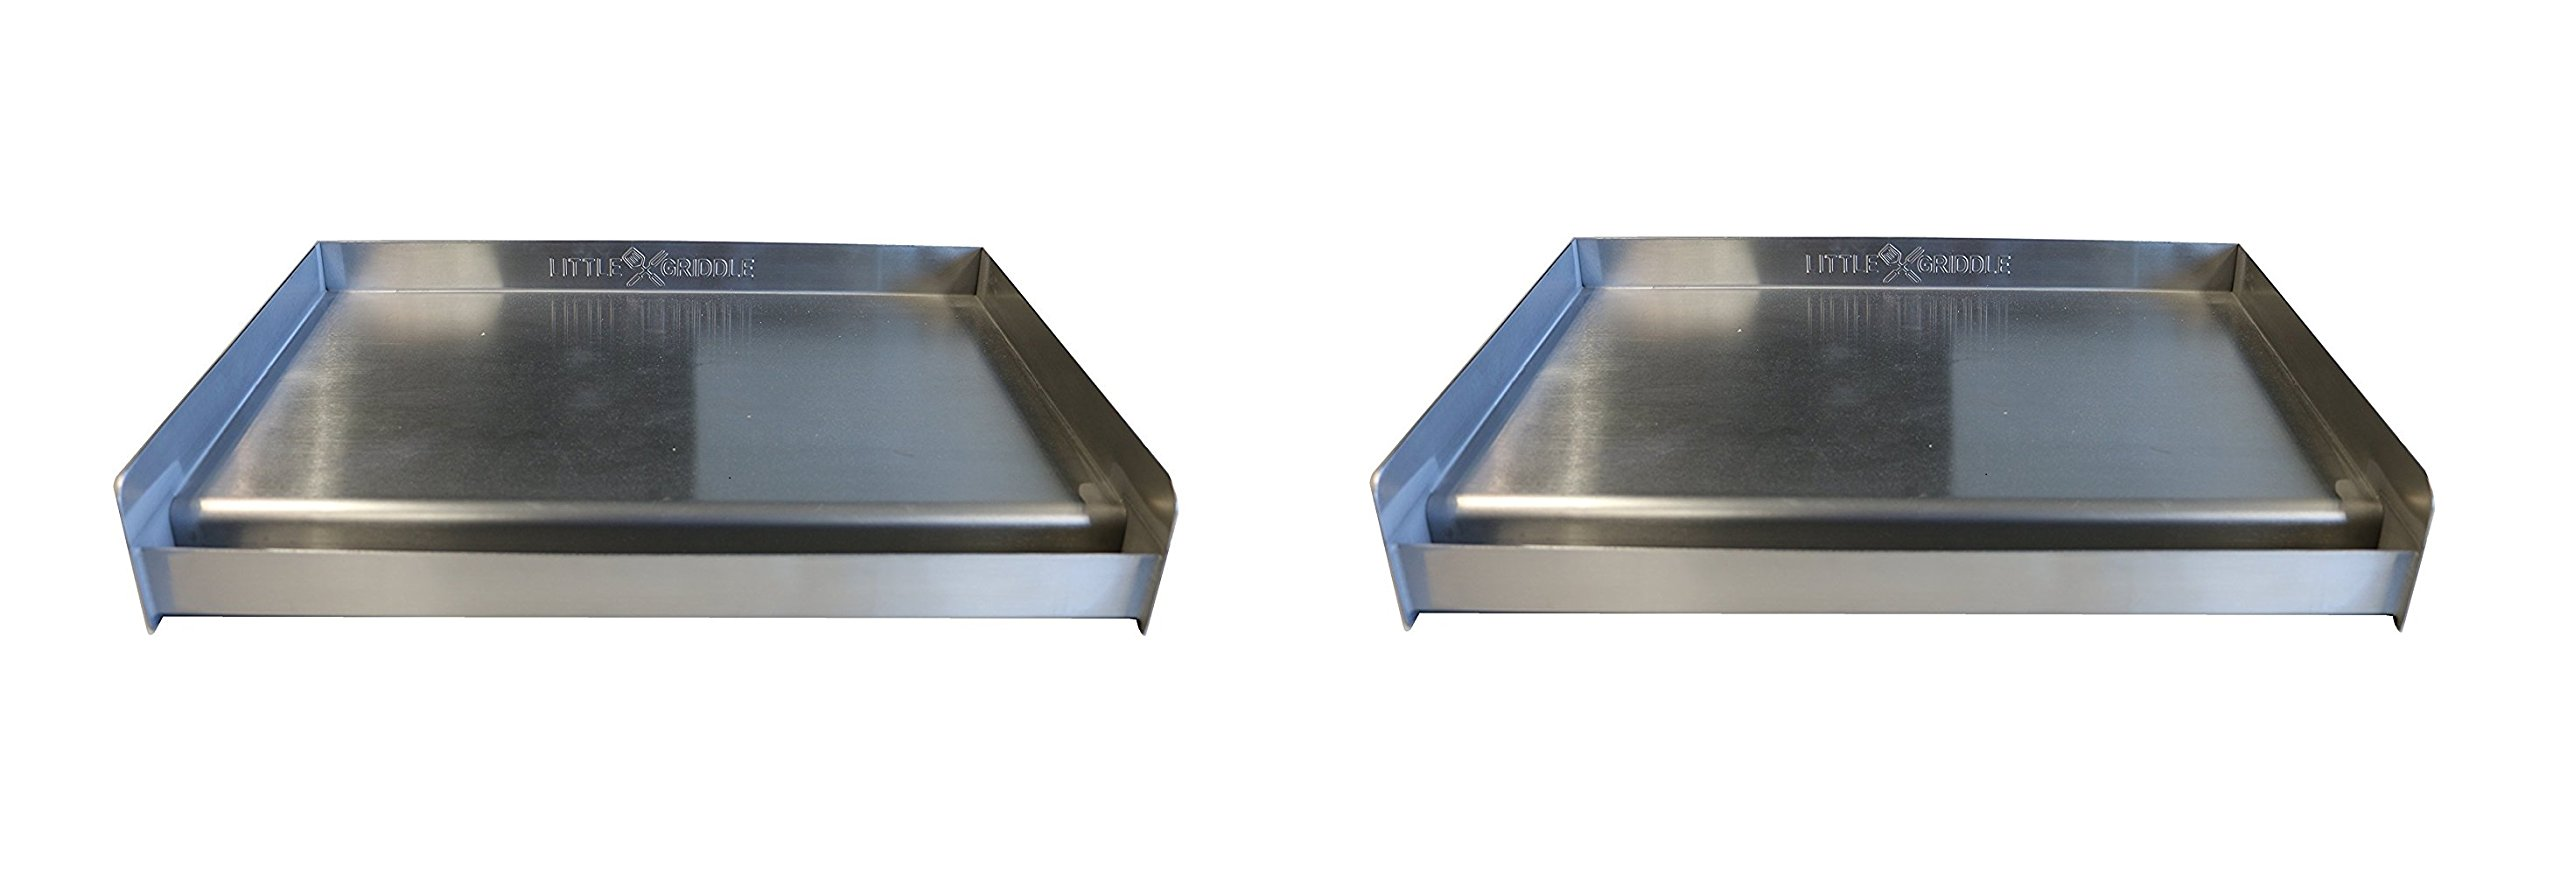 Little Griddle SQ180 Universal Griddle for BBQ Grills, Stainless (Formerly the Sizzle-Q) (Pack of 2)